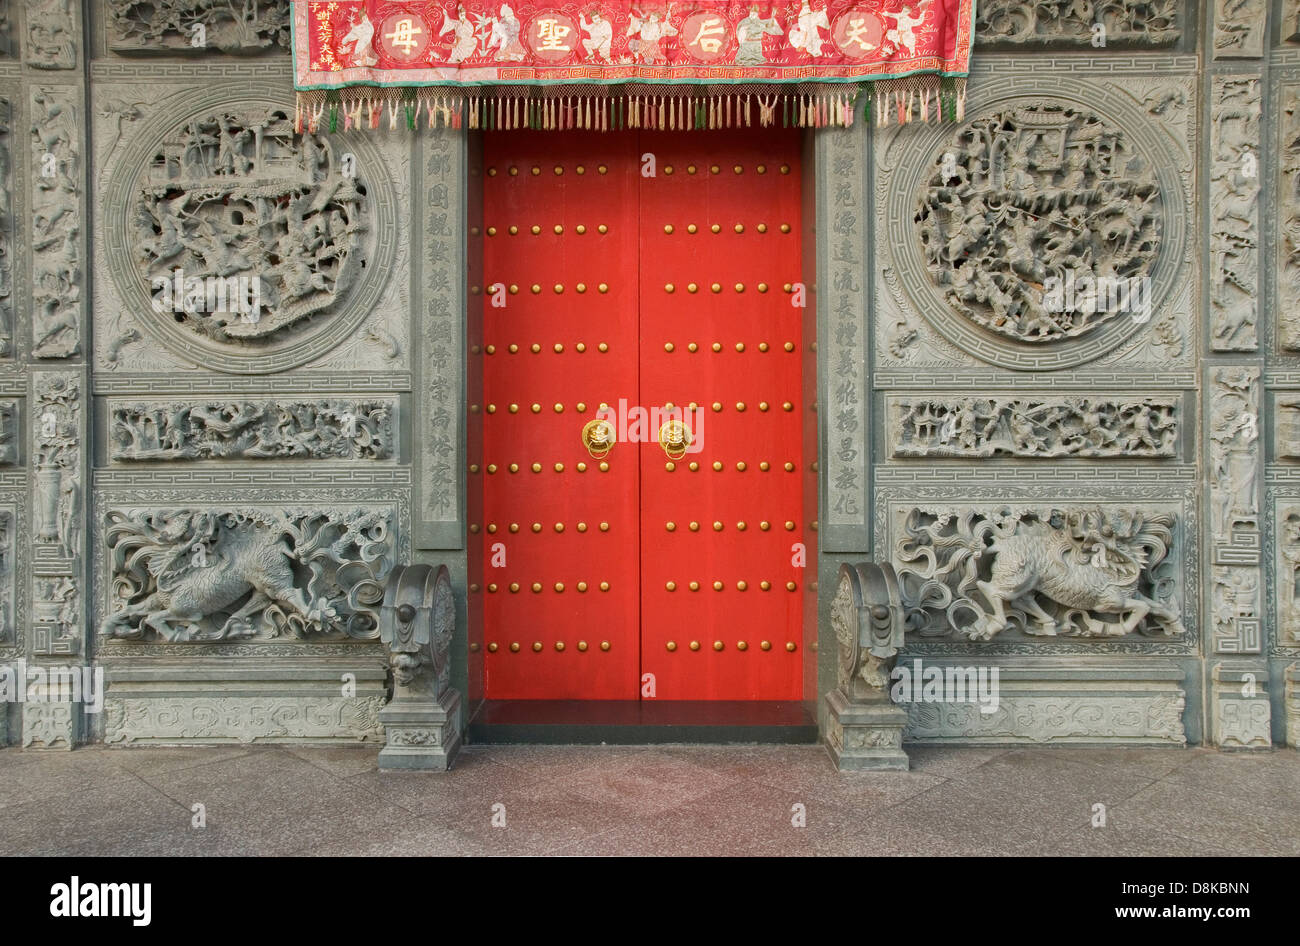 Exceptionnel Chinese Temple Doors, George Town, Penang, Malaysia   Stock Image